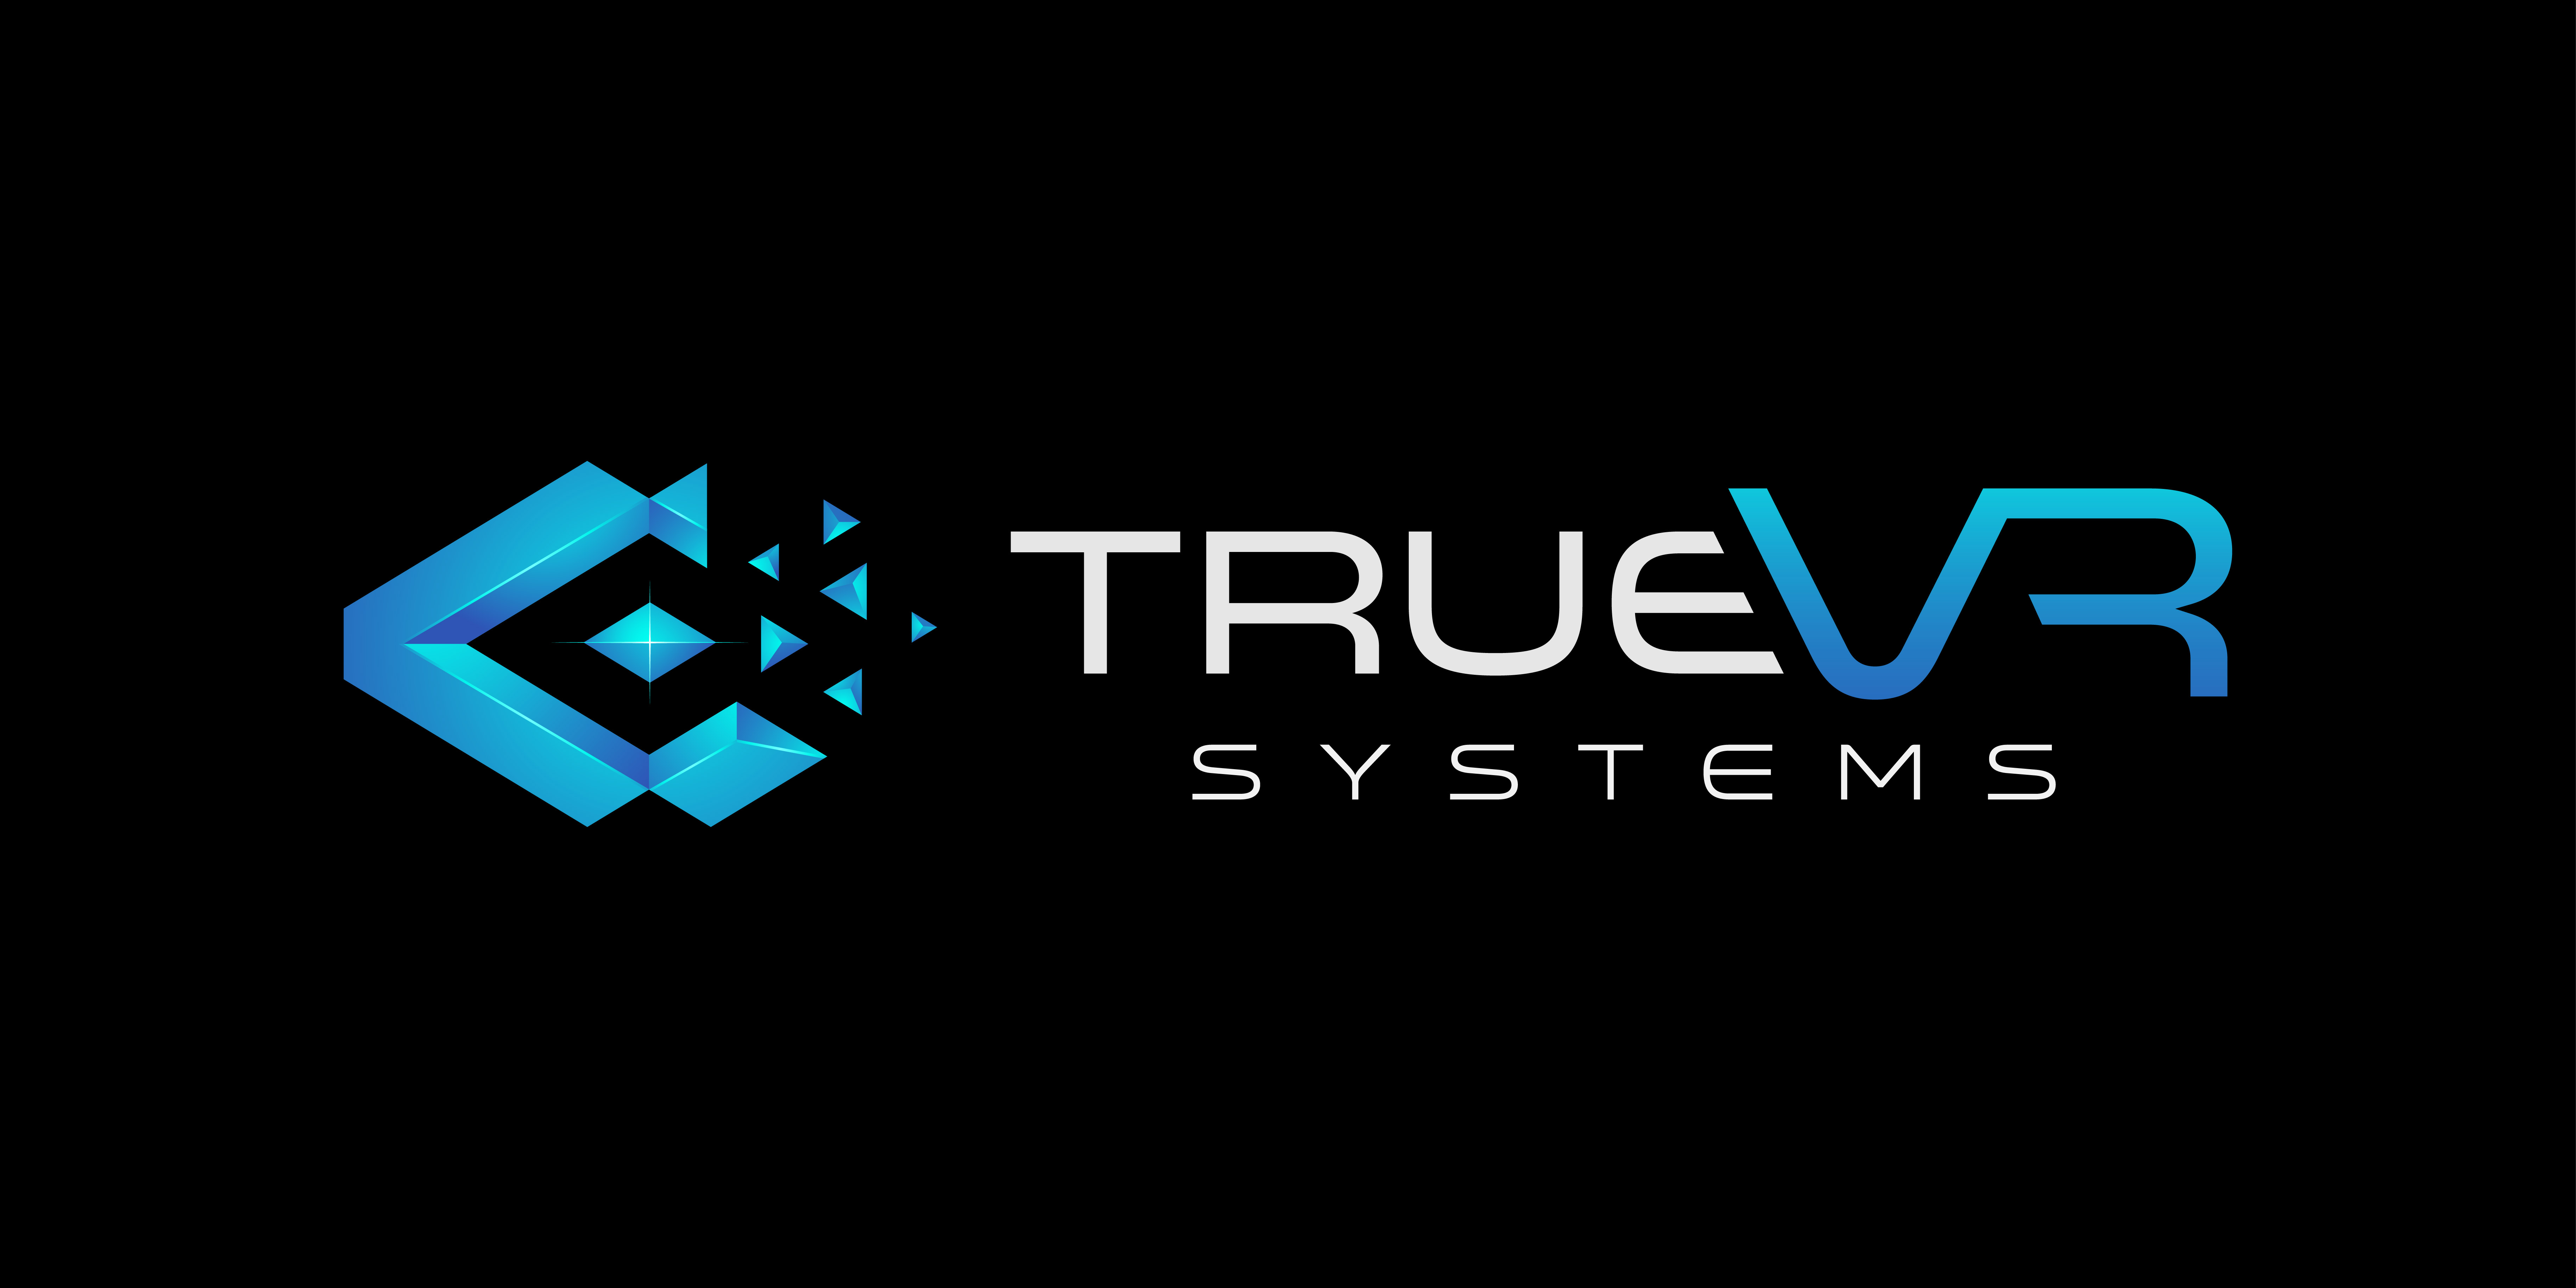 trueVRsystems Announces Expansion of New VR Entertainment Centers throughout U.S., Europe & South America